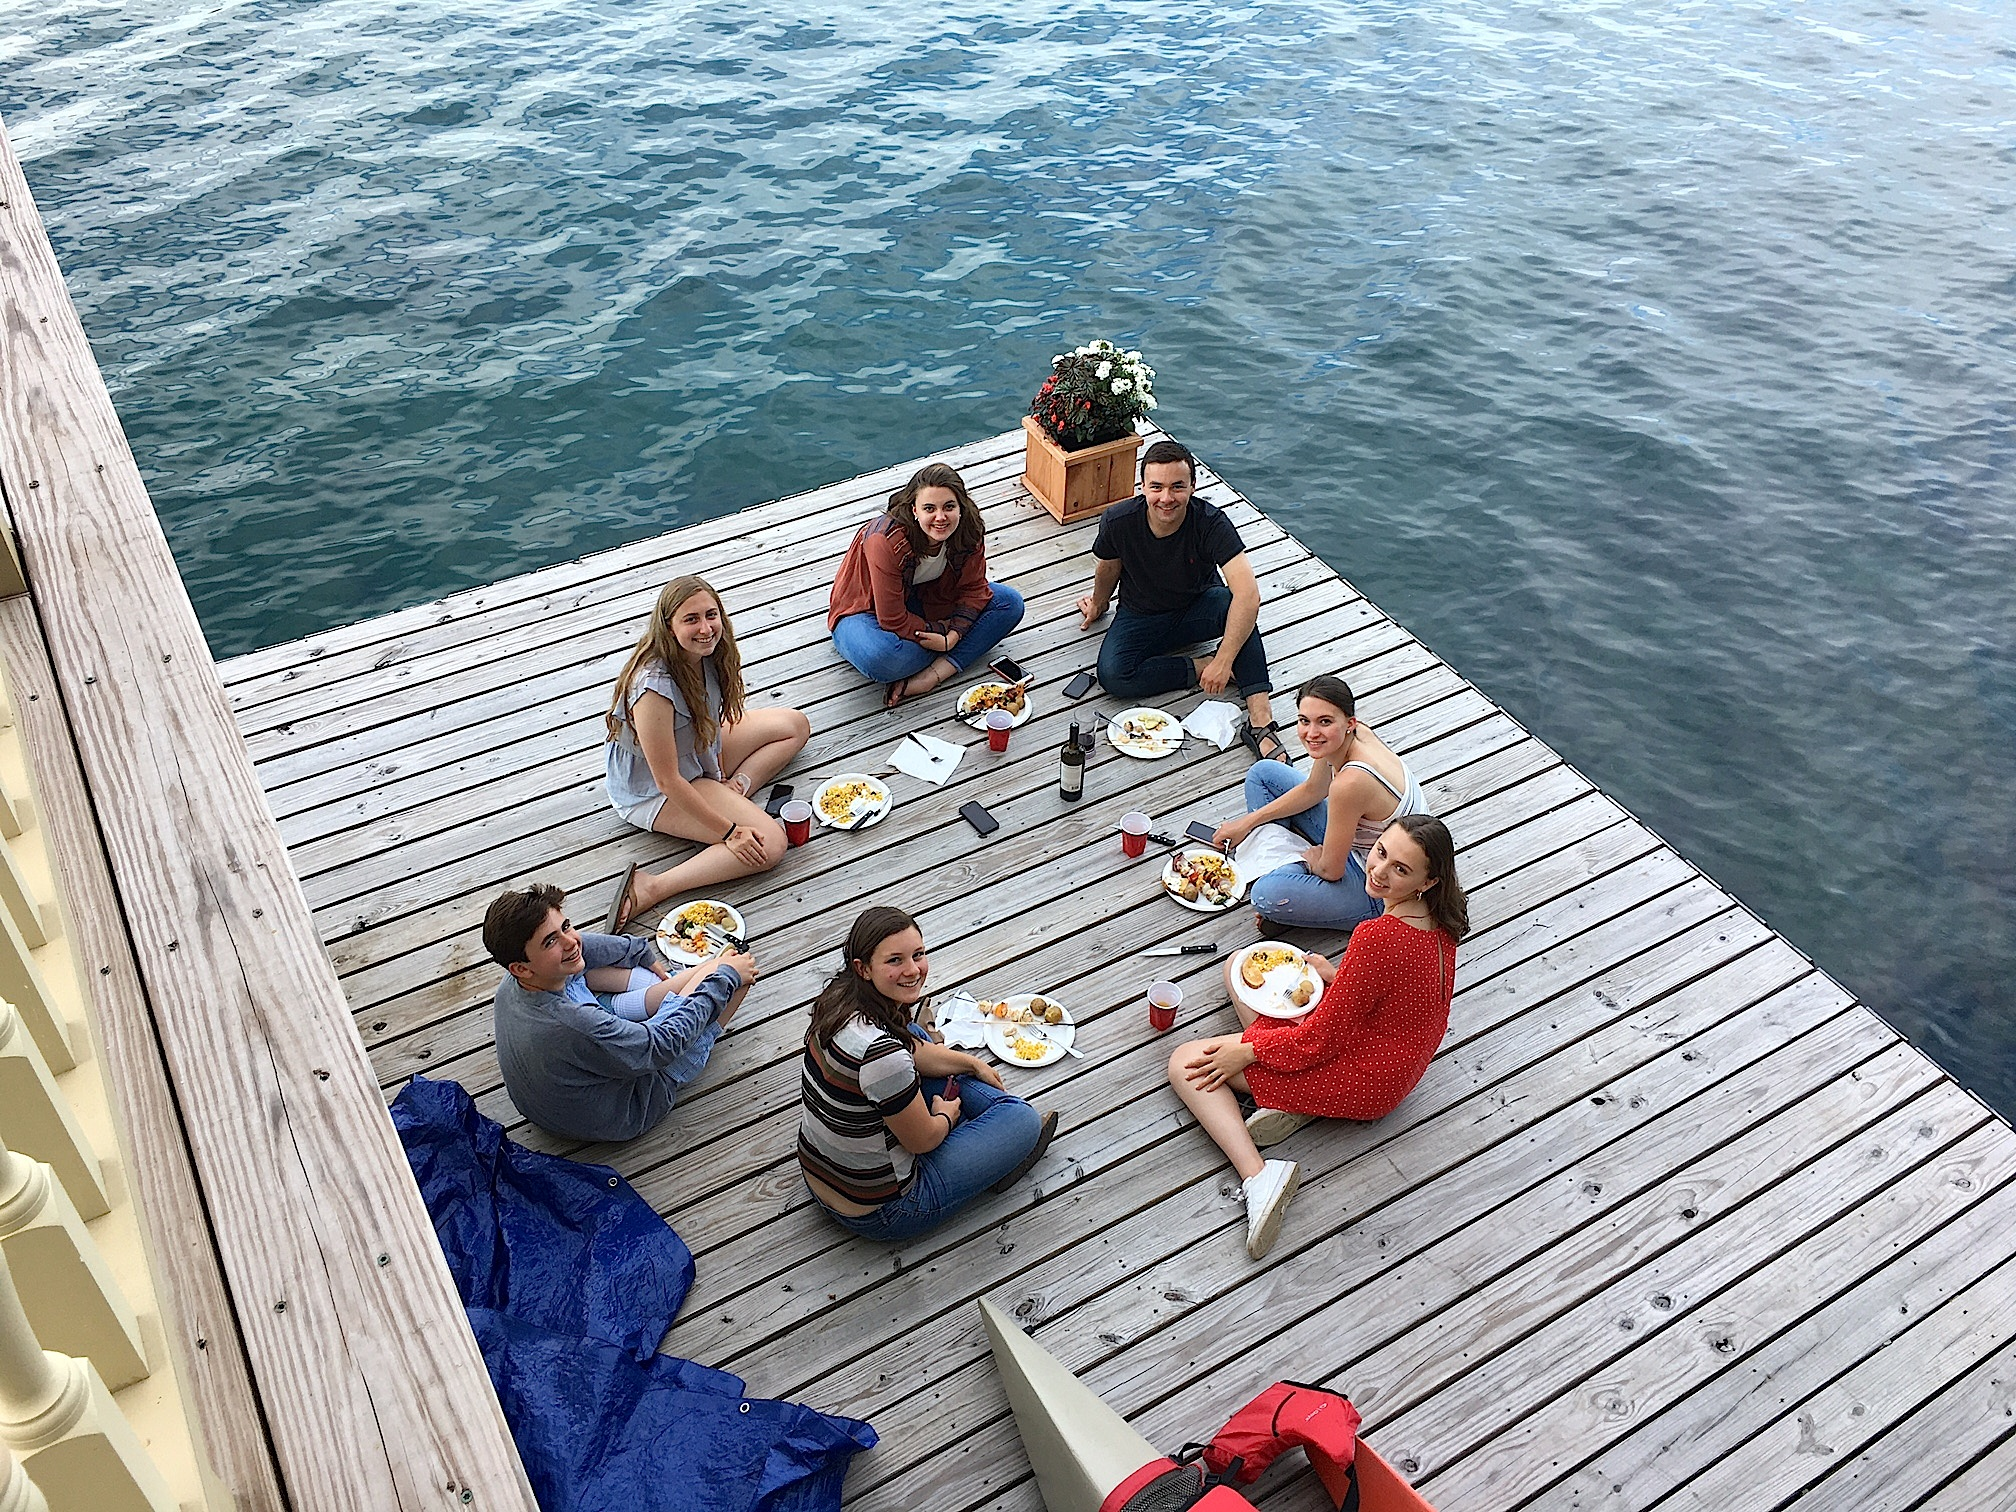 The teens eat dinner on the dock